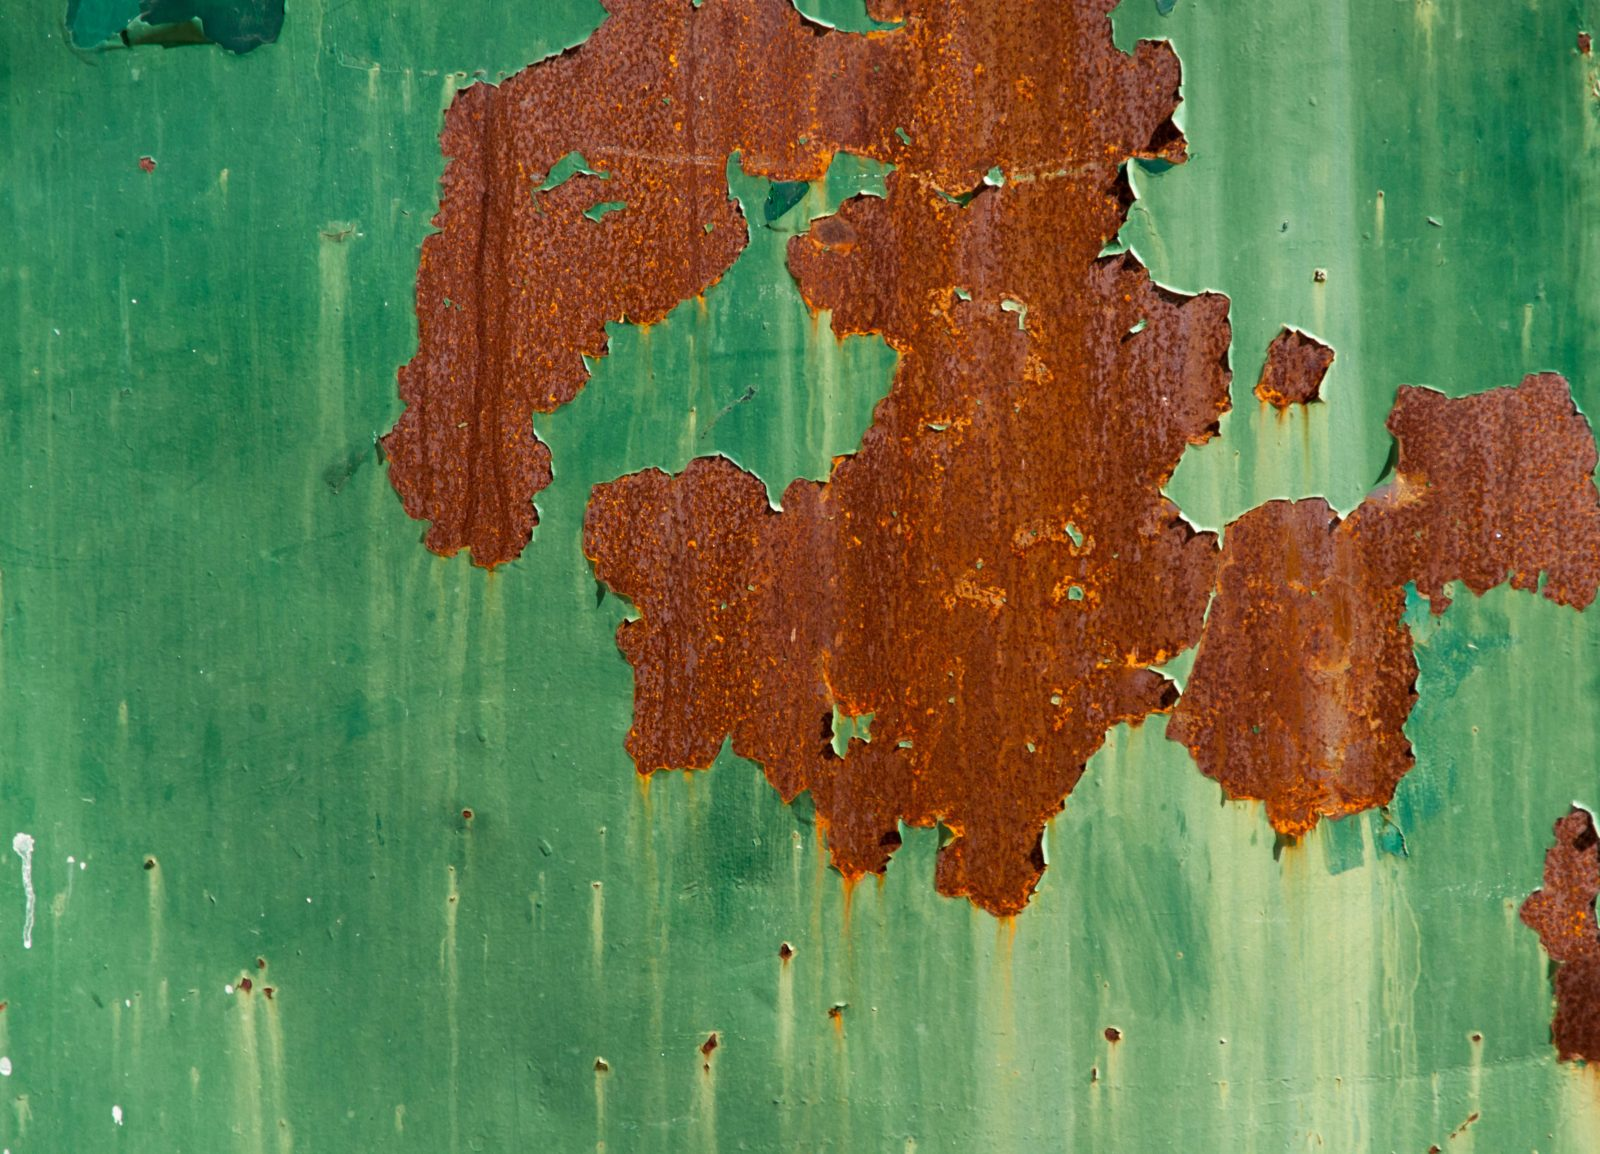 Old Worn Green Rusty Metal Door